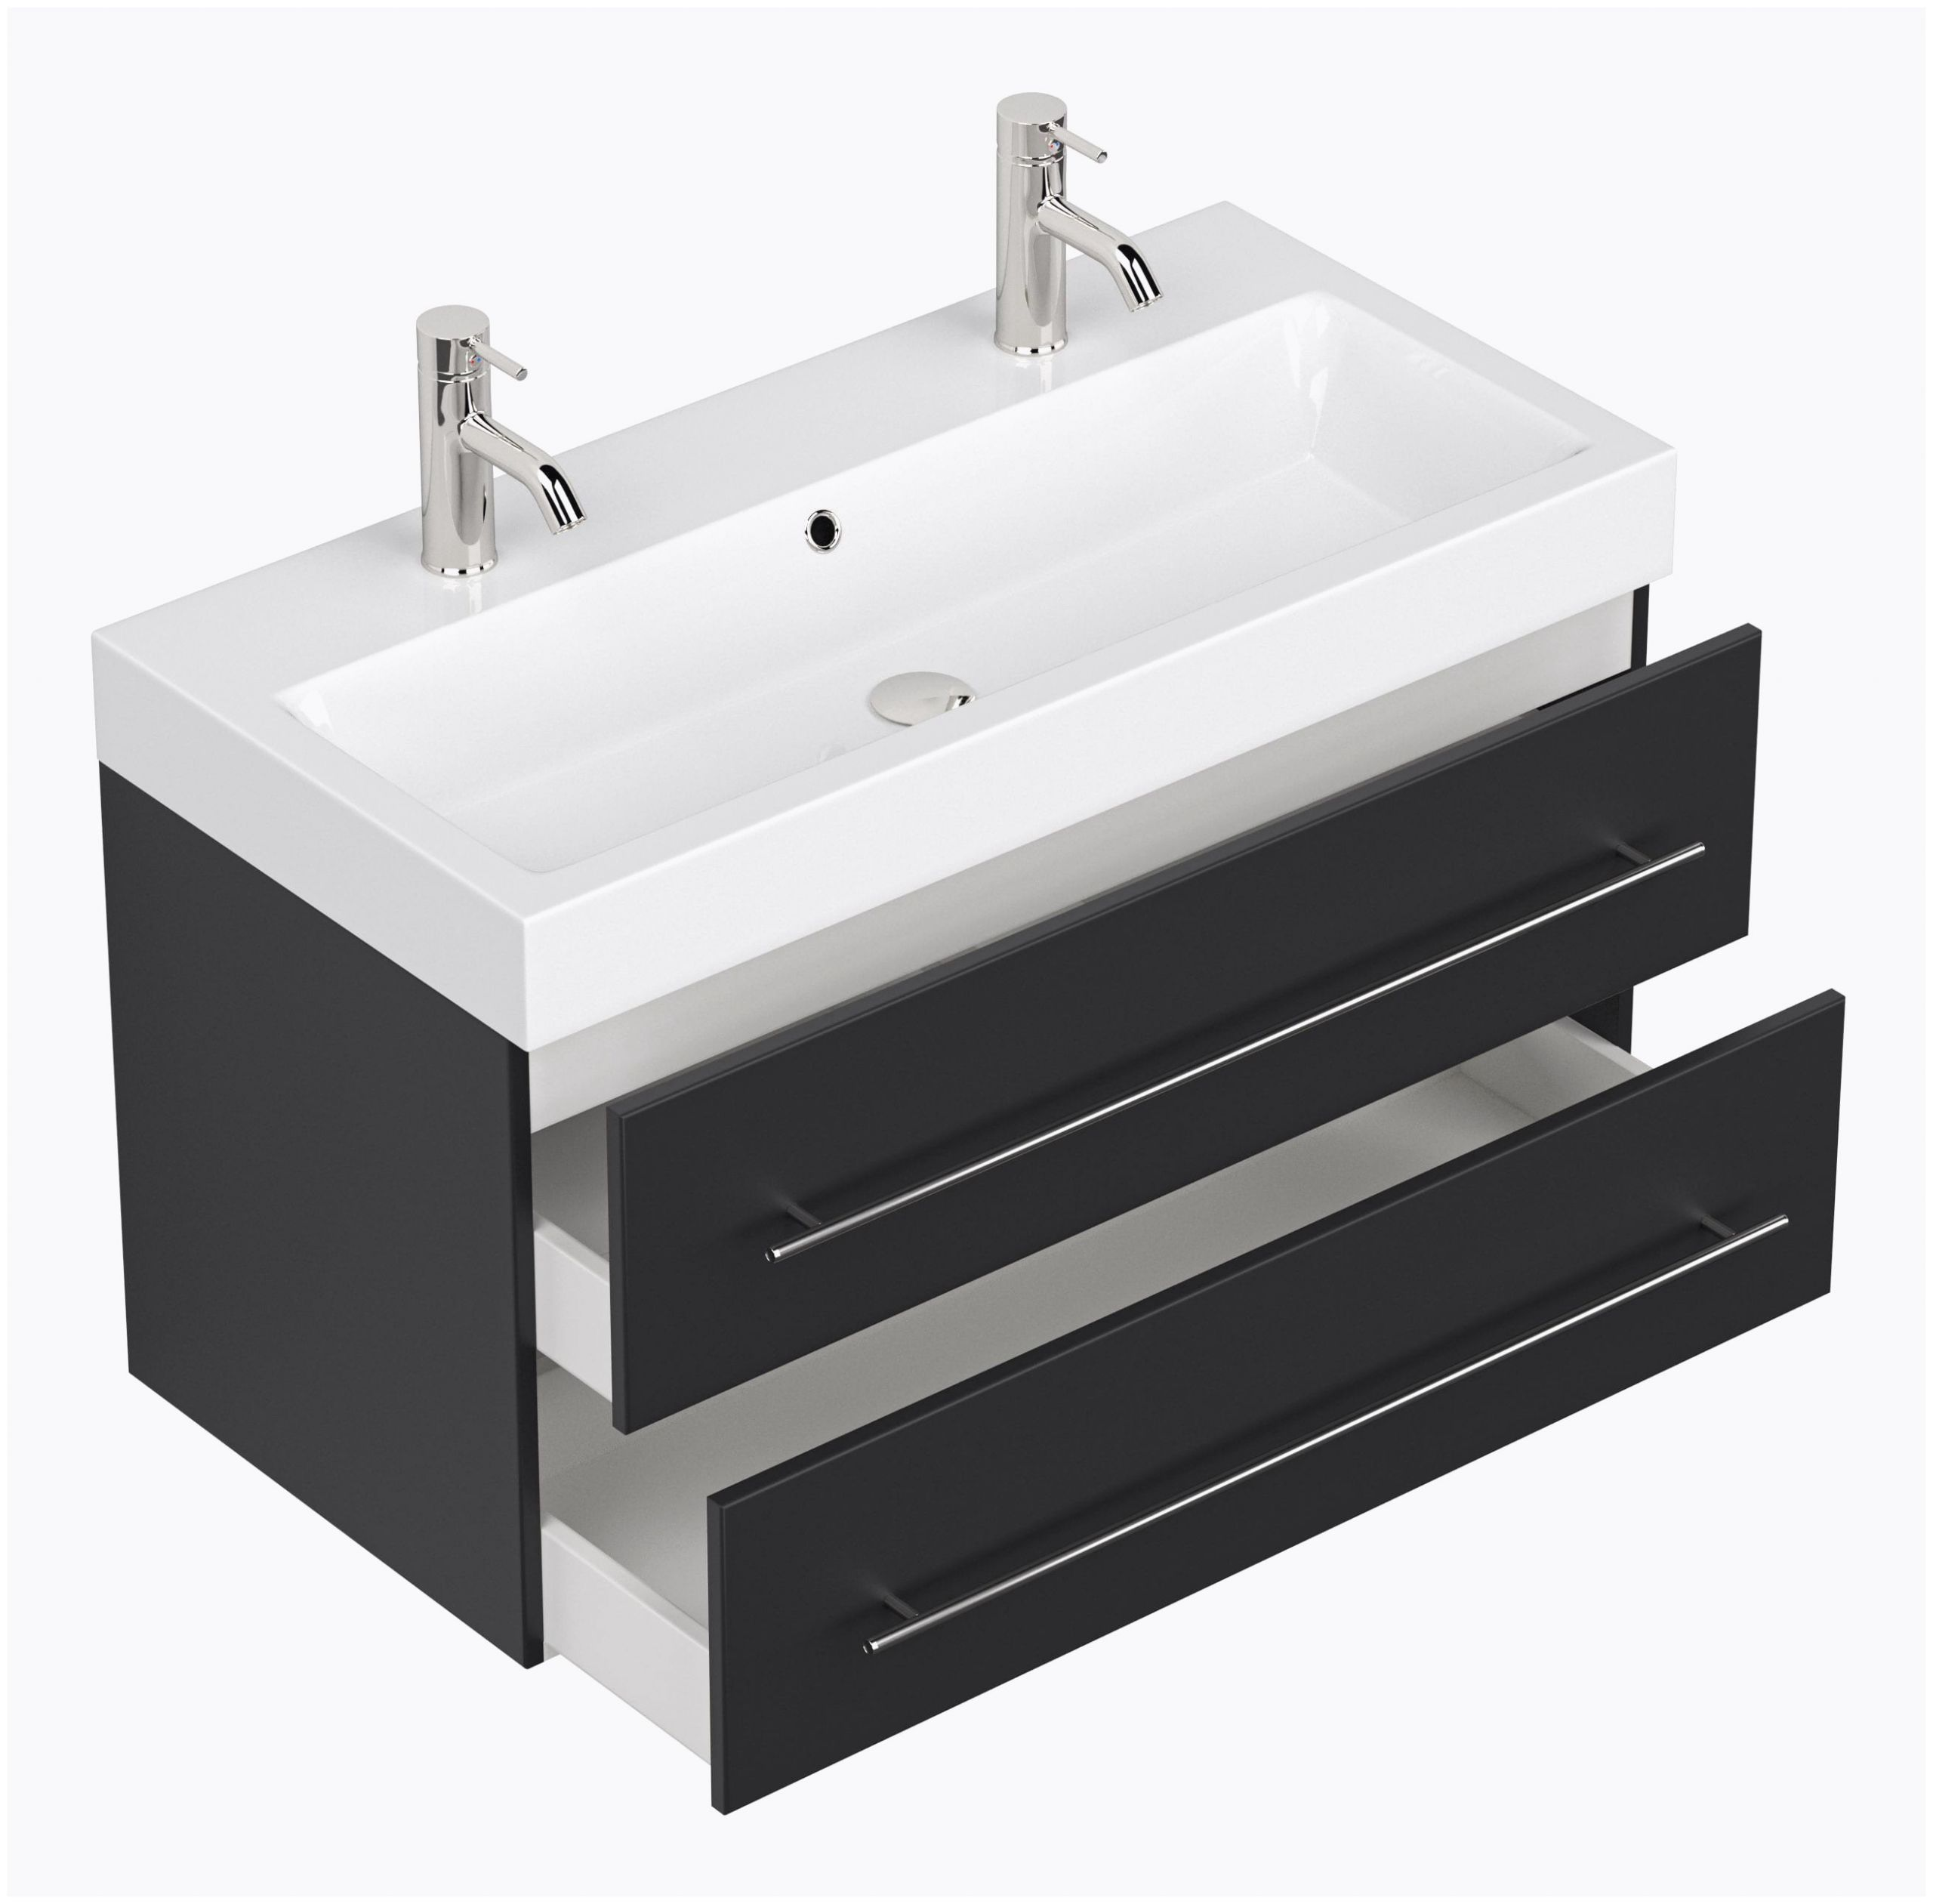 Bathroom Vanities Near Me Of Bathroom Vanities Bathroom Vanities In 2020 Modern Bathroom Vanity Bathroom Vanity Black Vanity Bathroom